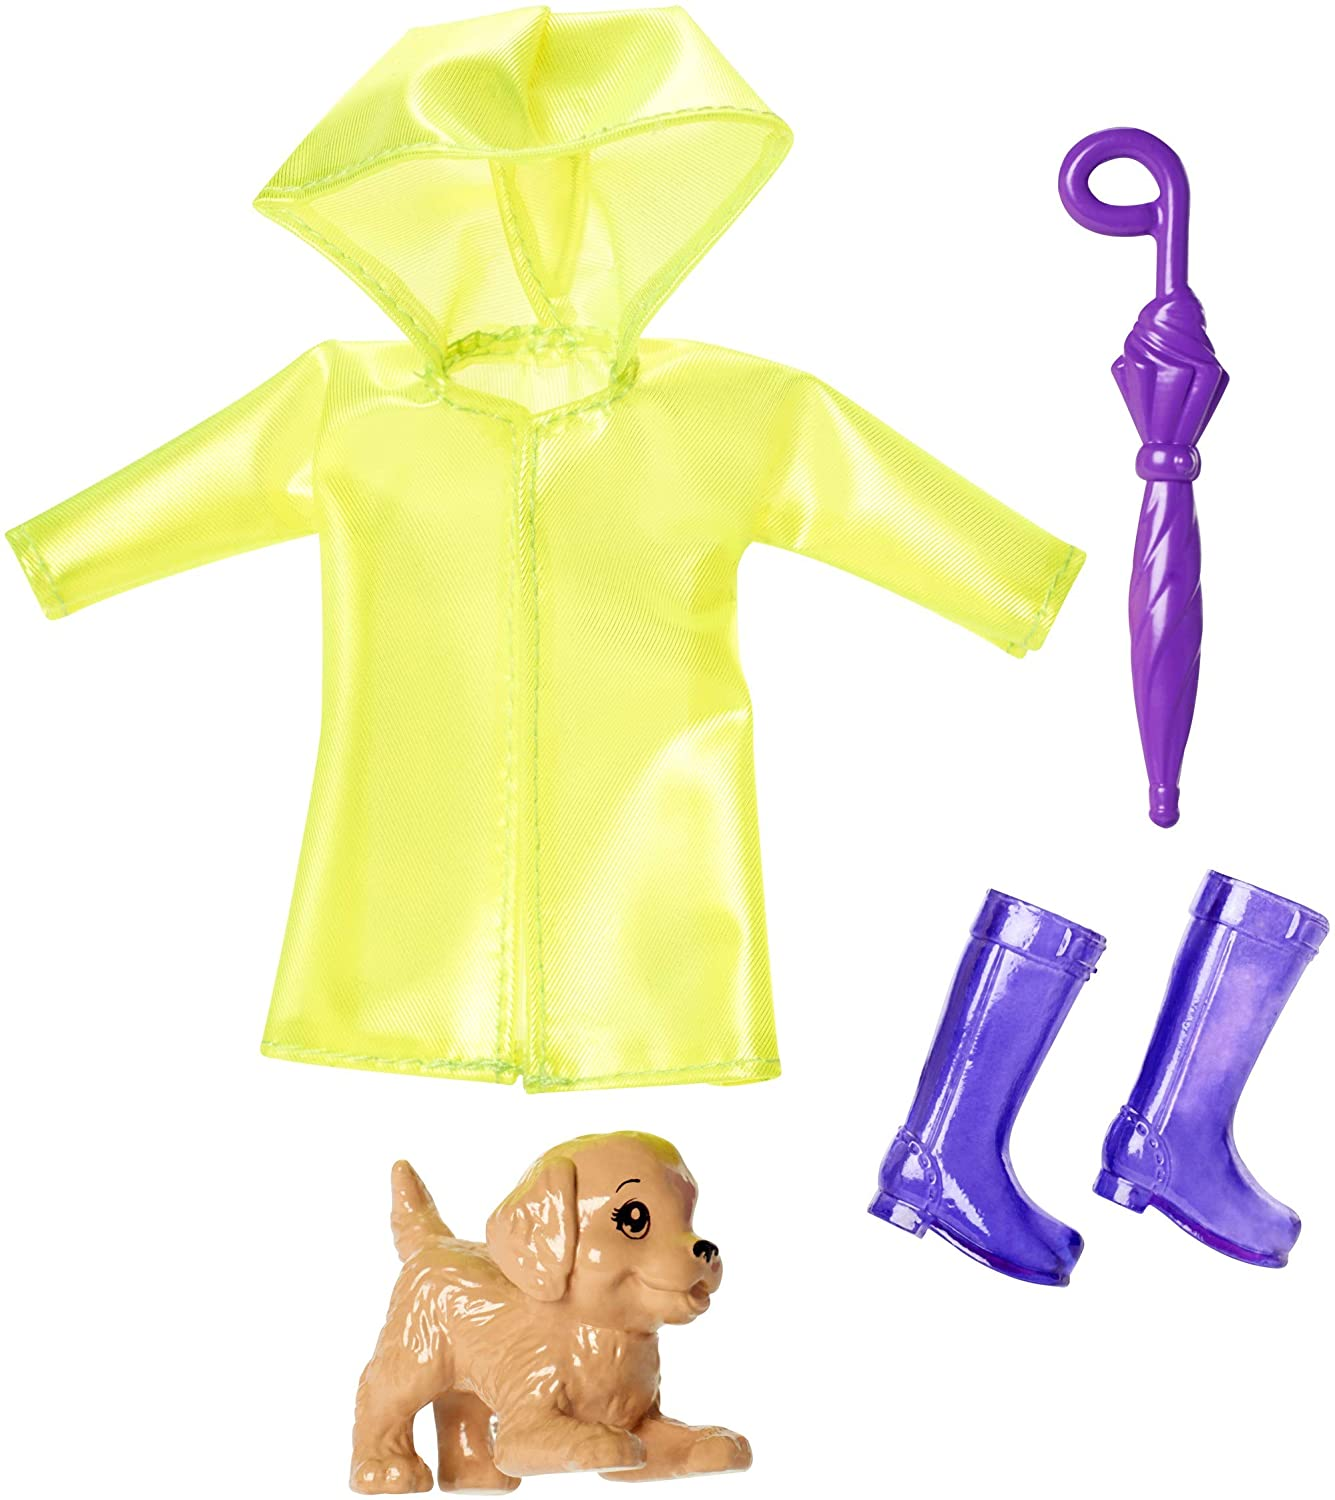 Barbie Club Chelsea Accessory Pack, Rainy Day-Themed Clothing and Accessories for Small Dolls, 4 Pieces for 3 to 7 Year Olds Include Raincoat, Umbrella and Puppy